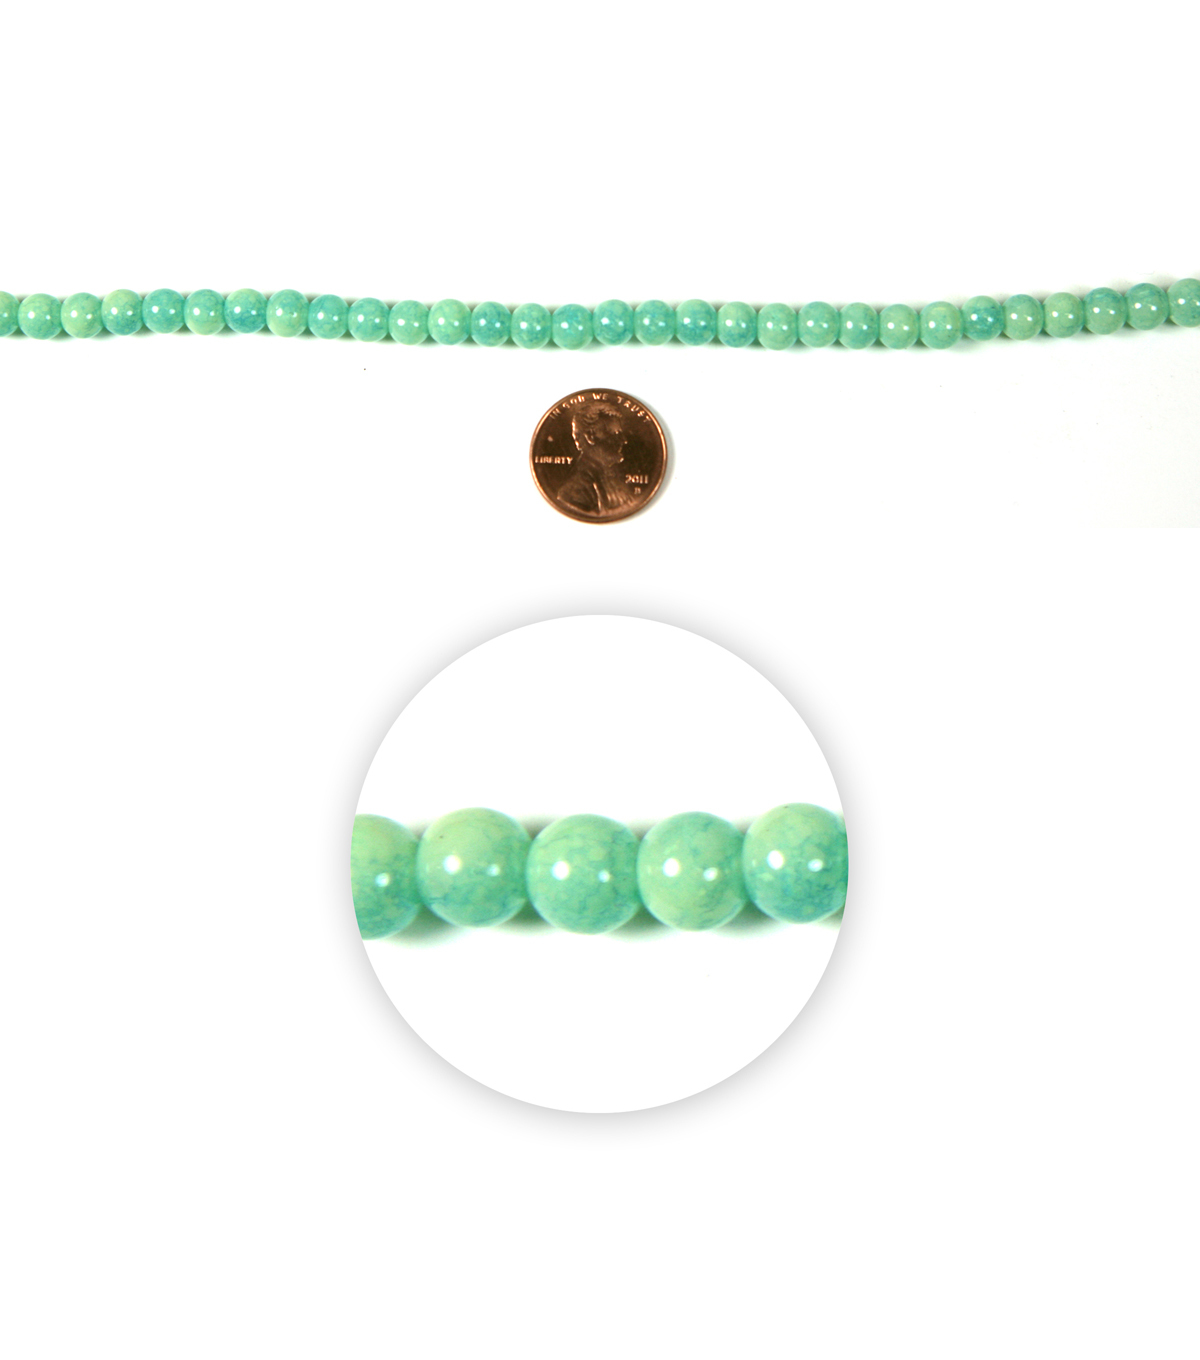 Blue Moon Strung Glass Beads,Round,Mint Green,Marbeled